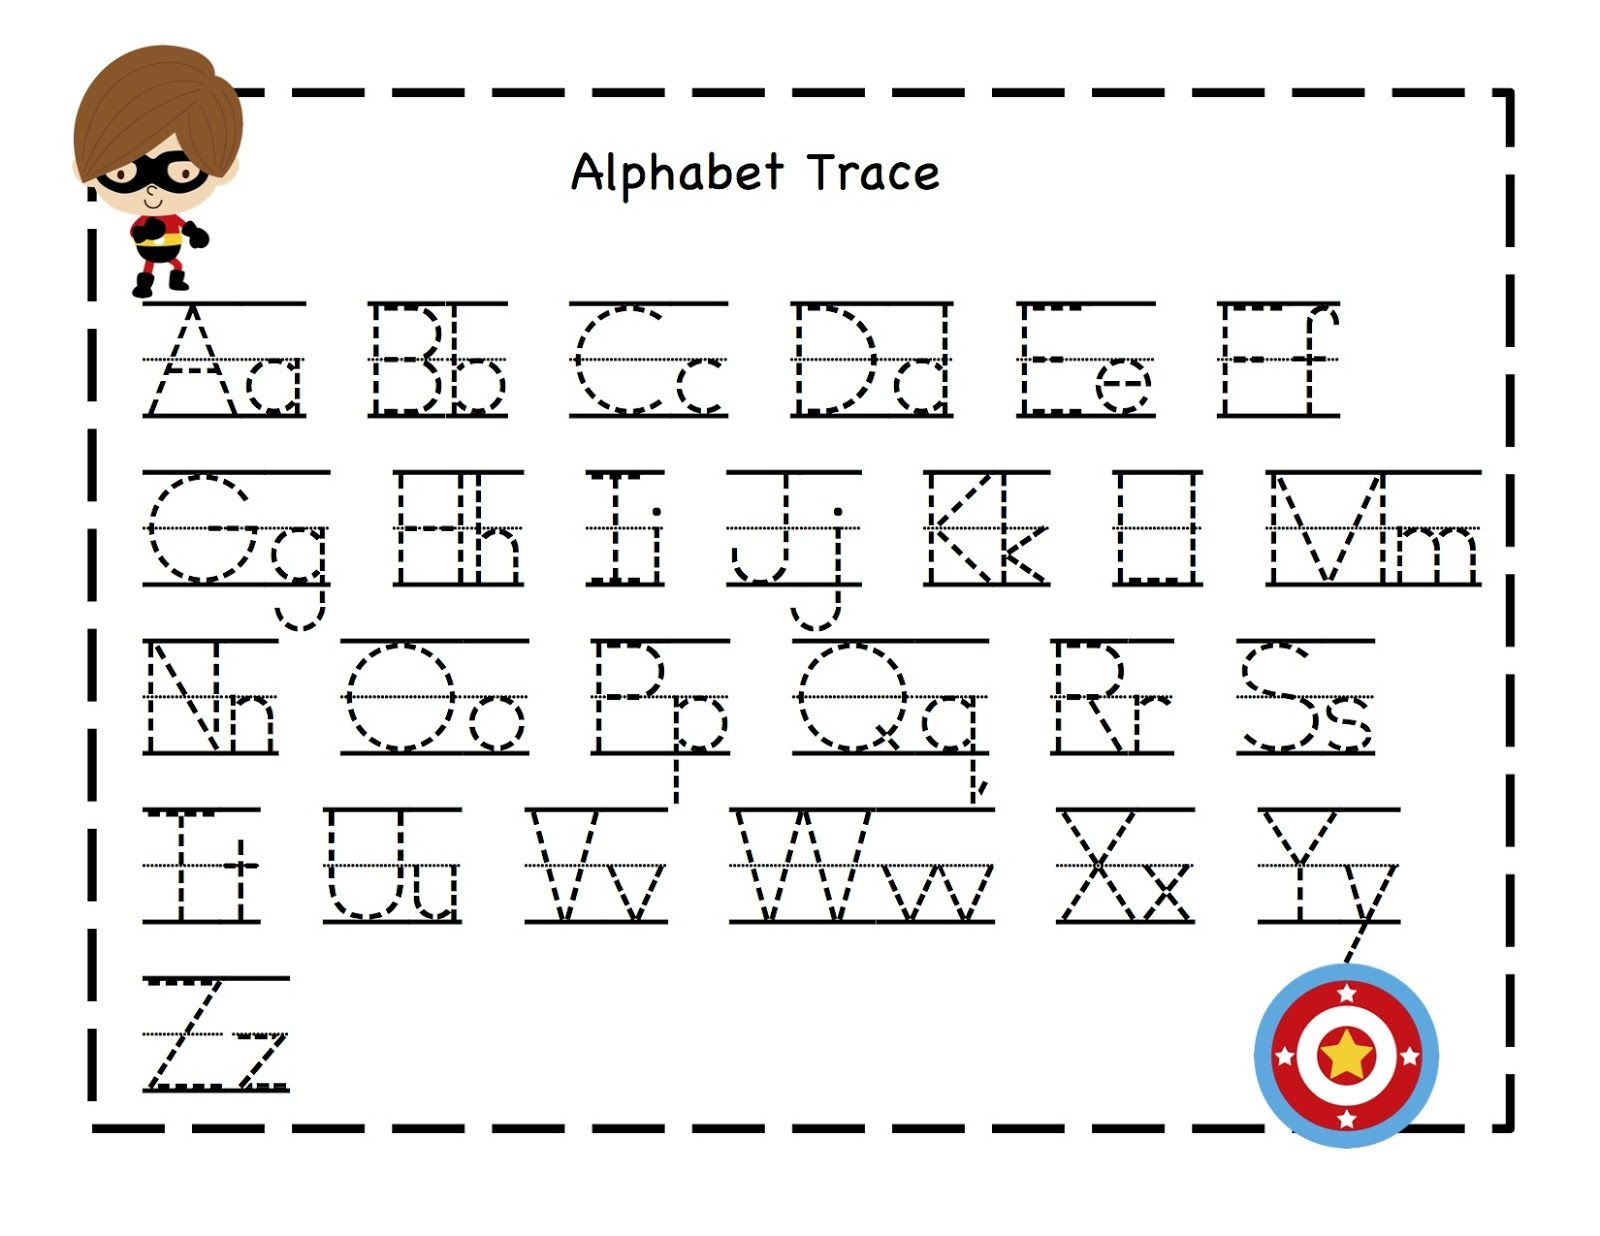 Abc Tracing Sheets For Preschool Kids | Alphabet Tracing intended for Alphabet Tracing Activities